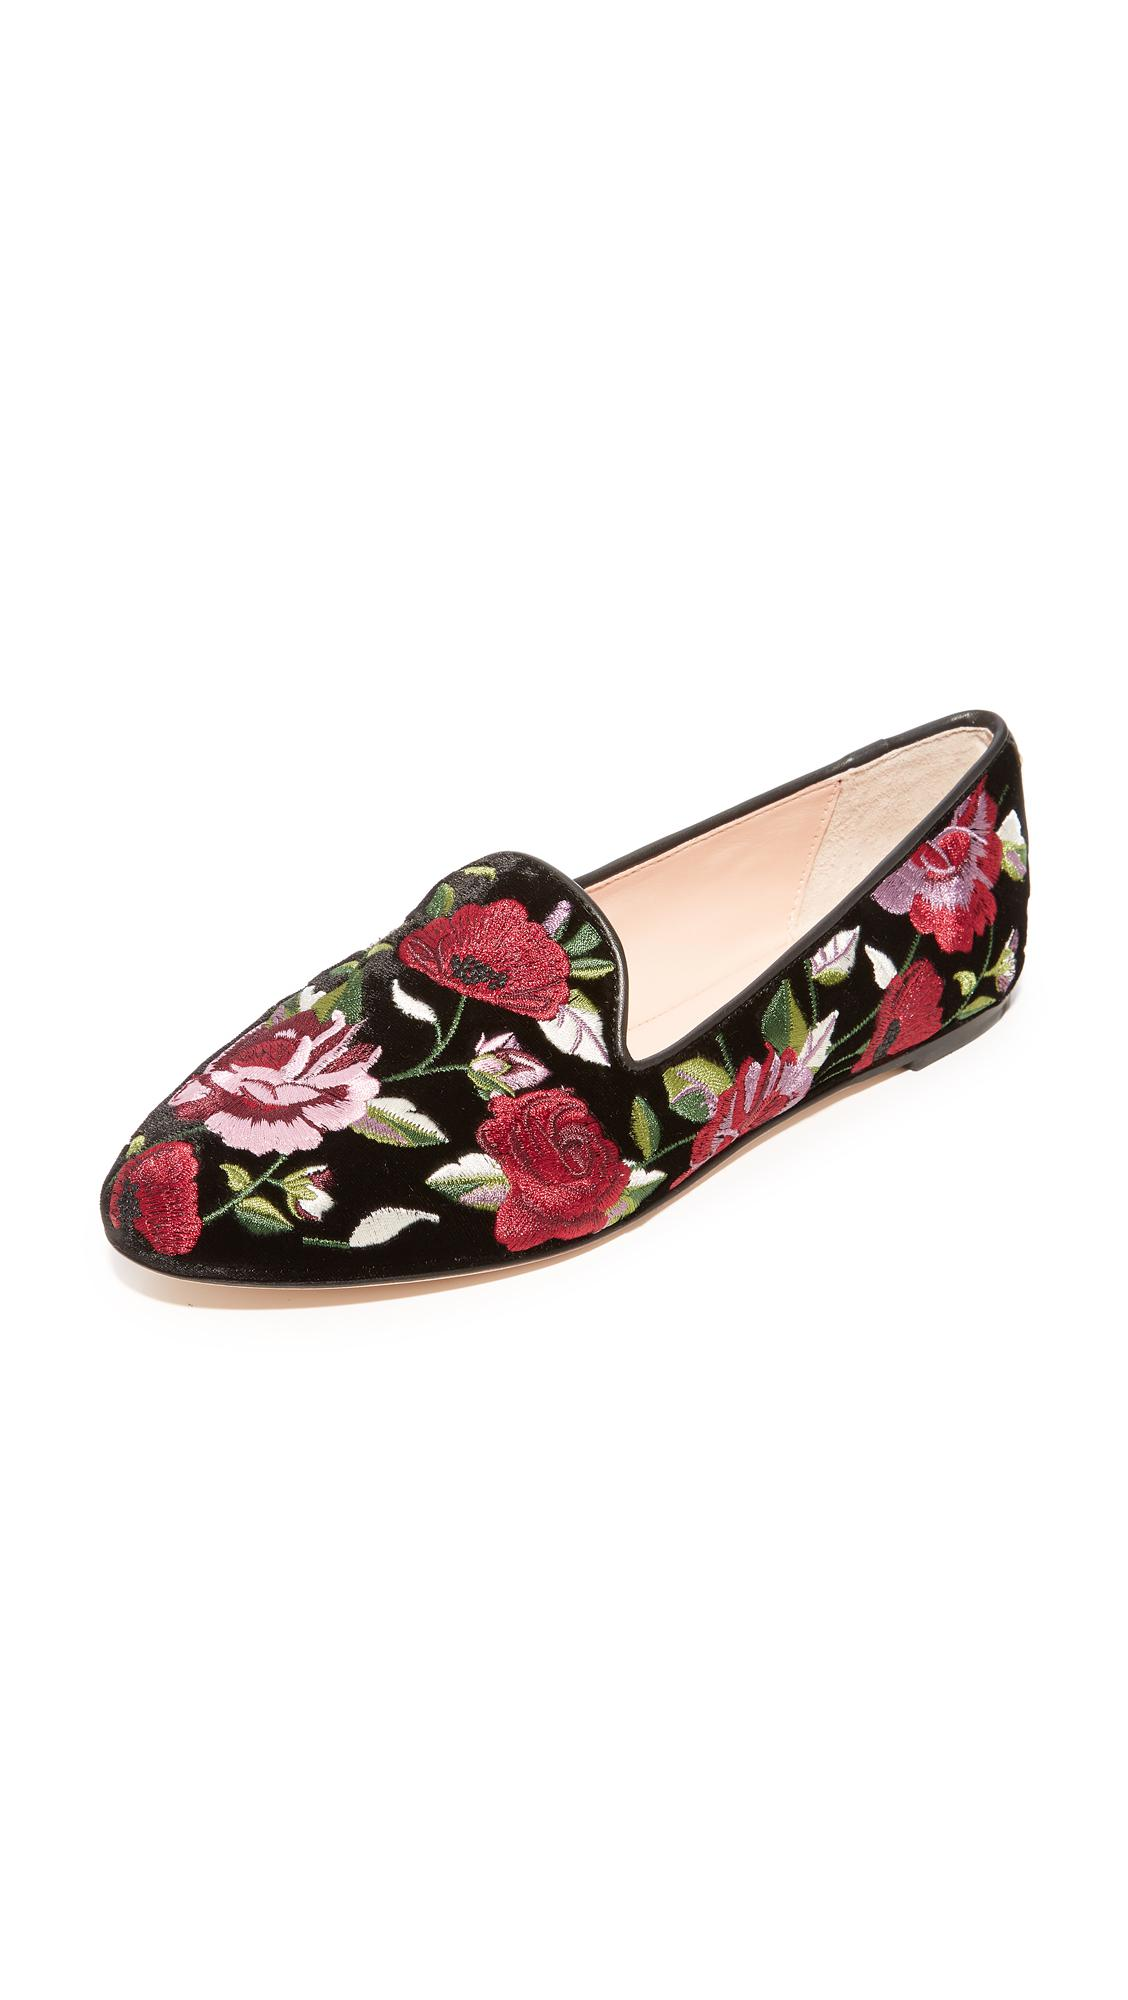 3f92e61b7840 Kate Spade Swinton Floral Slip On Flats in Black - Lyst